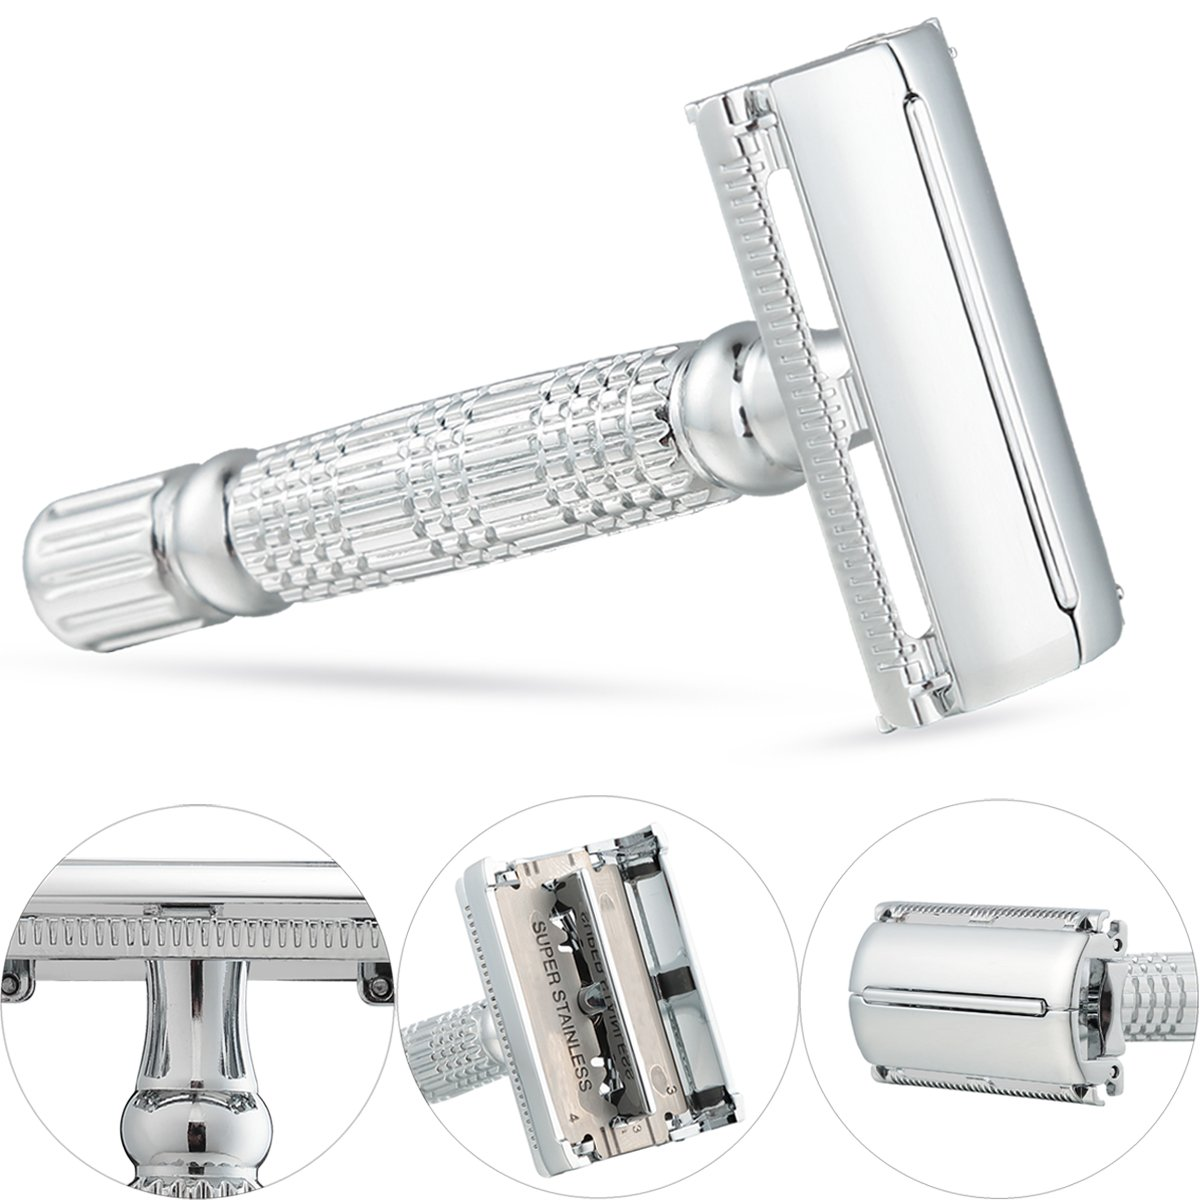 GoBetter Deluxe Double Edge Safety Razor + 5 Long Lasting Platinum-Chrome Super Sharp Stainless Steel Blades in Gift Box, Heavy Duty, This is the Best Shaving Razor of Your Life!!!